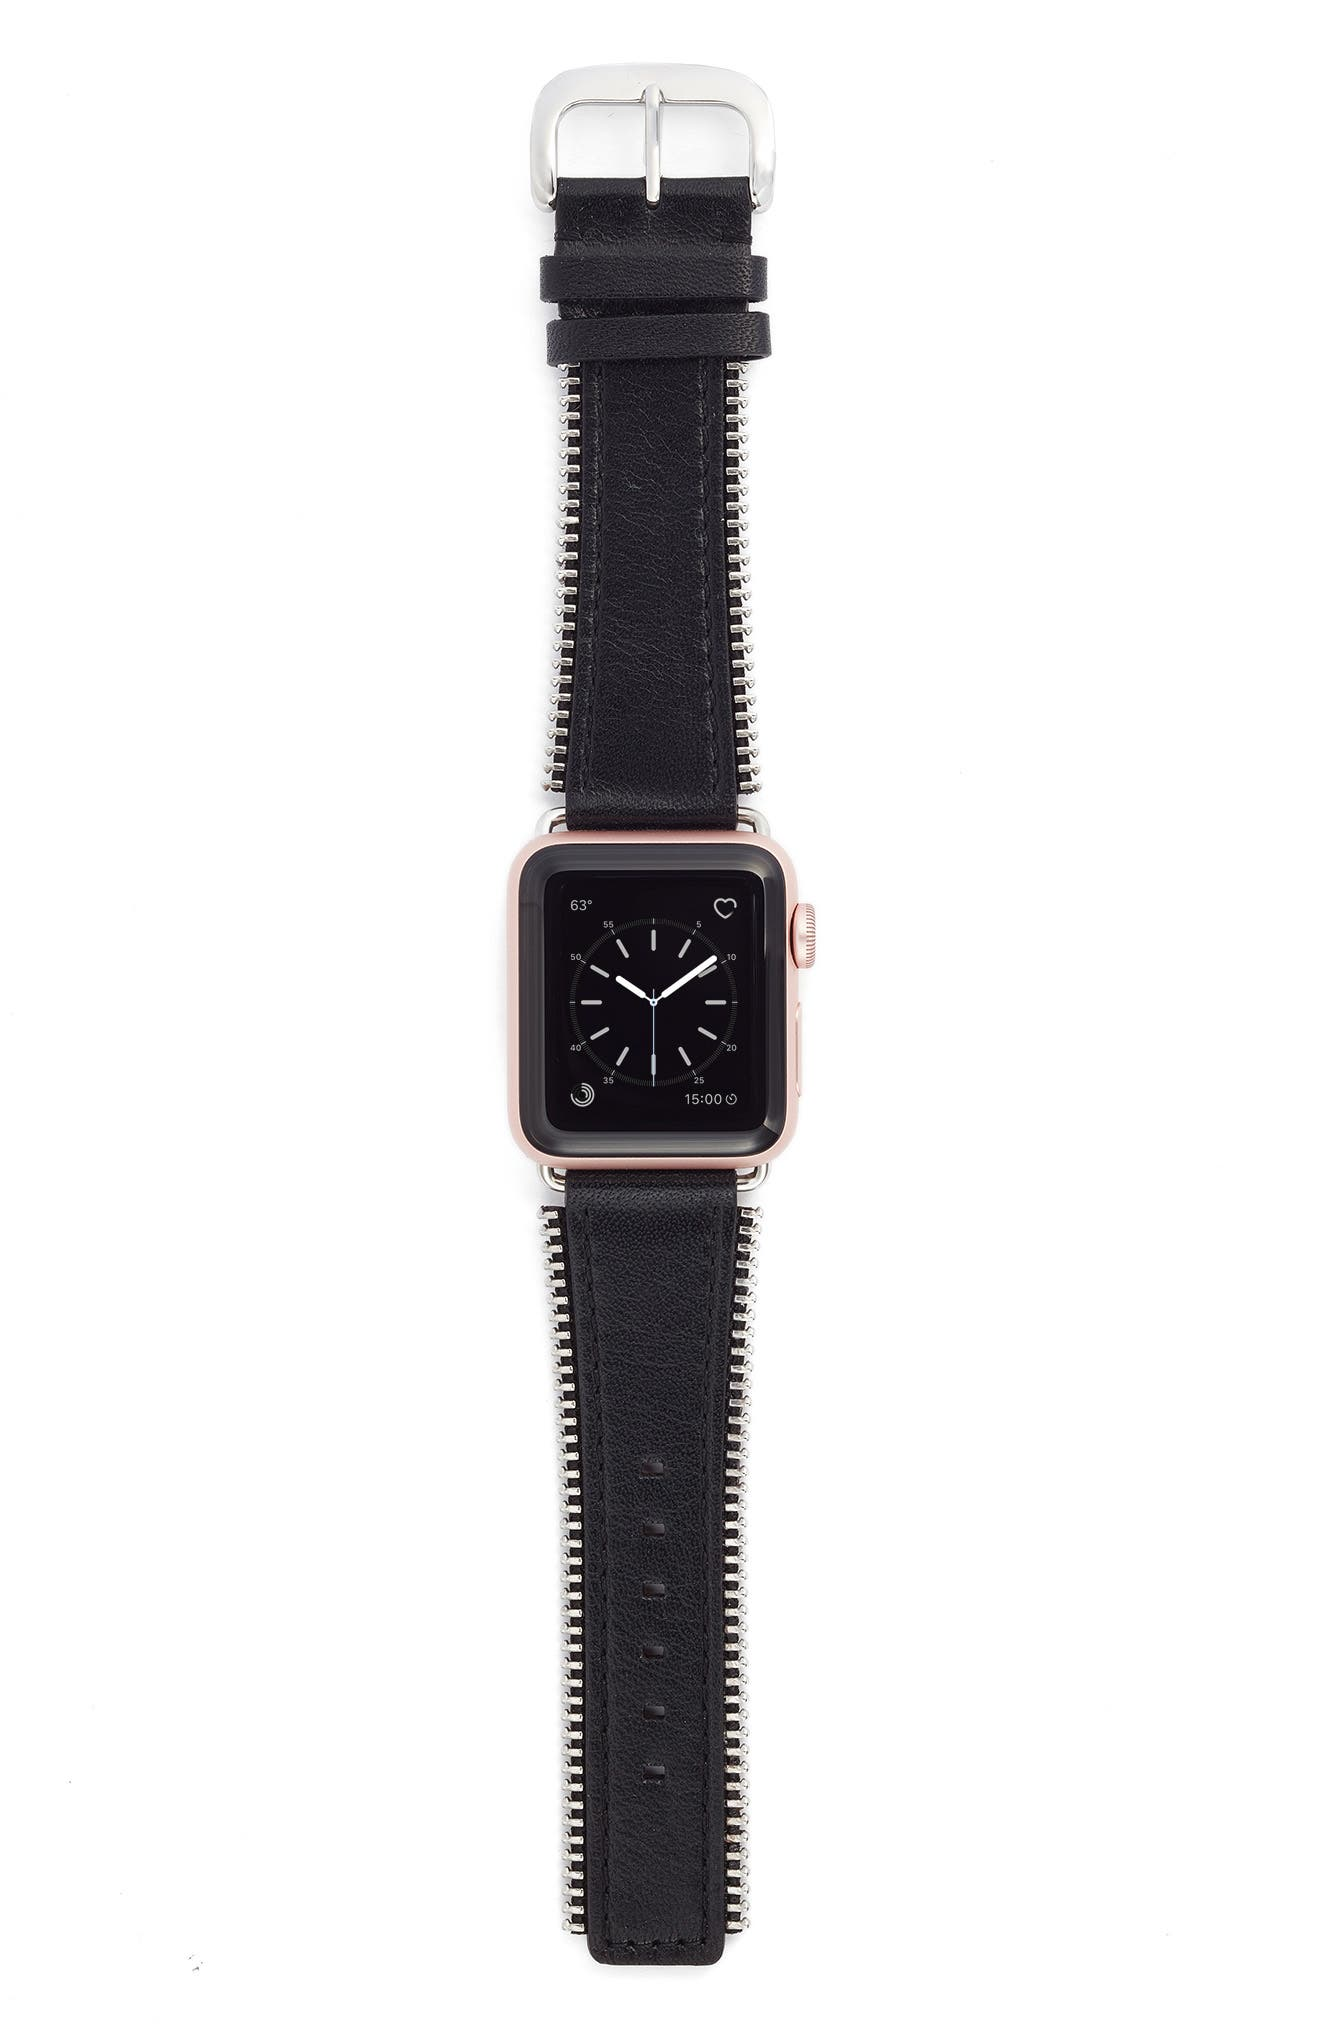 Bezels & Bytes Extended Length Zip Teeth Leather Apple Watch Strap, 38mm